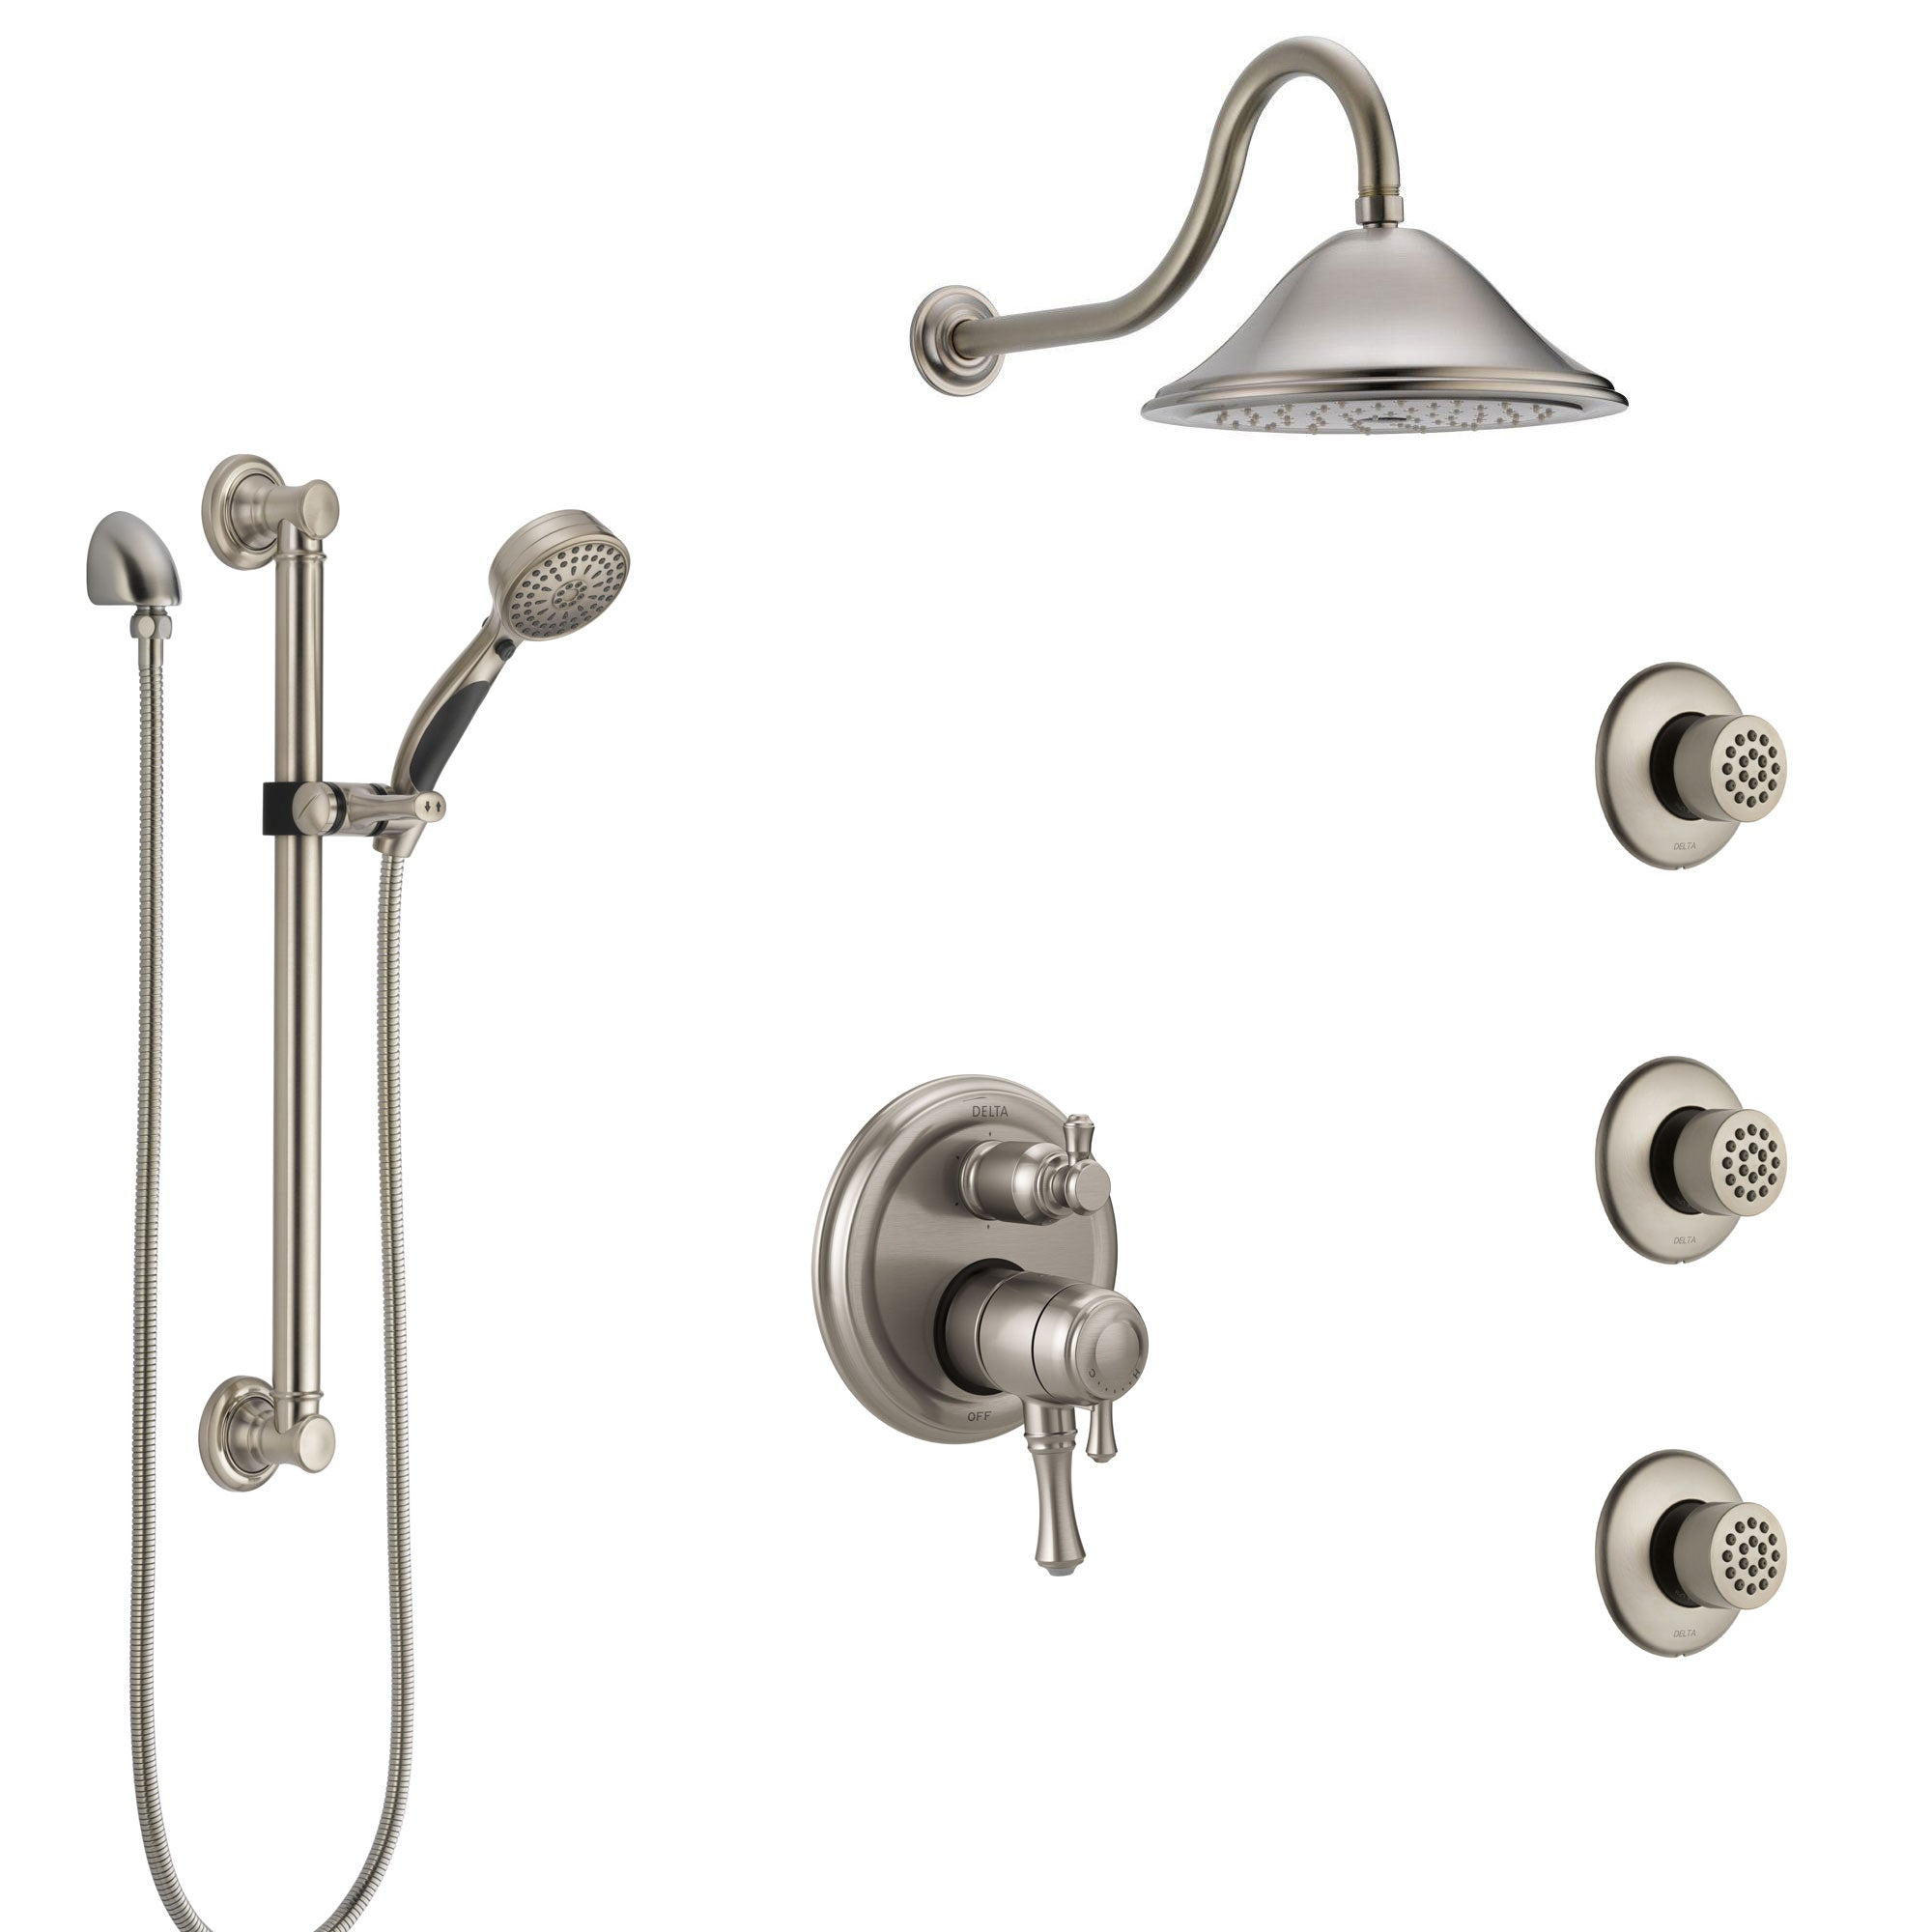 Delta Cassidy Dual Control Handle Stainless Steel Finish Integrated Diverter Shower System, Showerhead, 3 Body Sprays, Grab Bar Hand Spray SS27997SS12